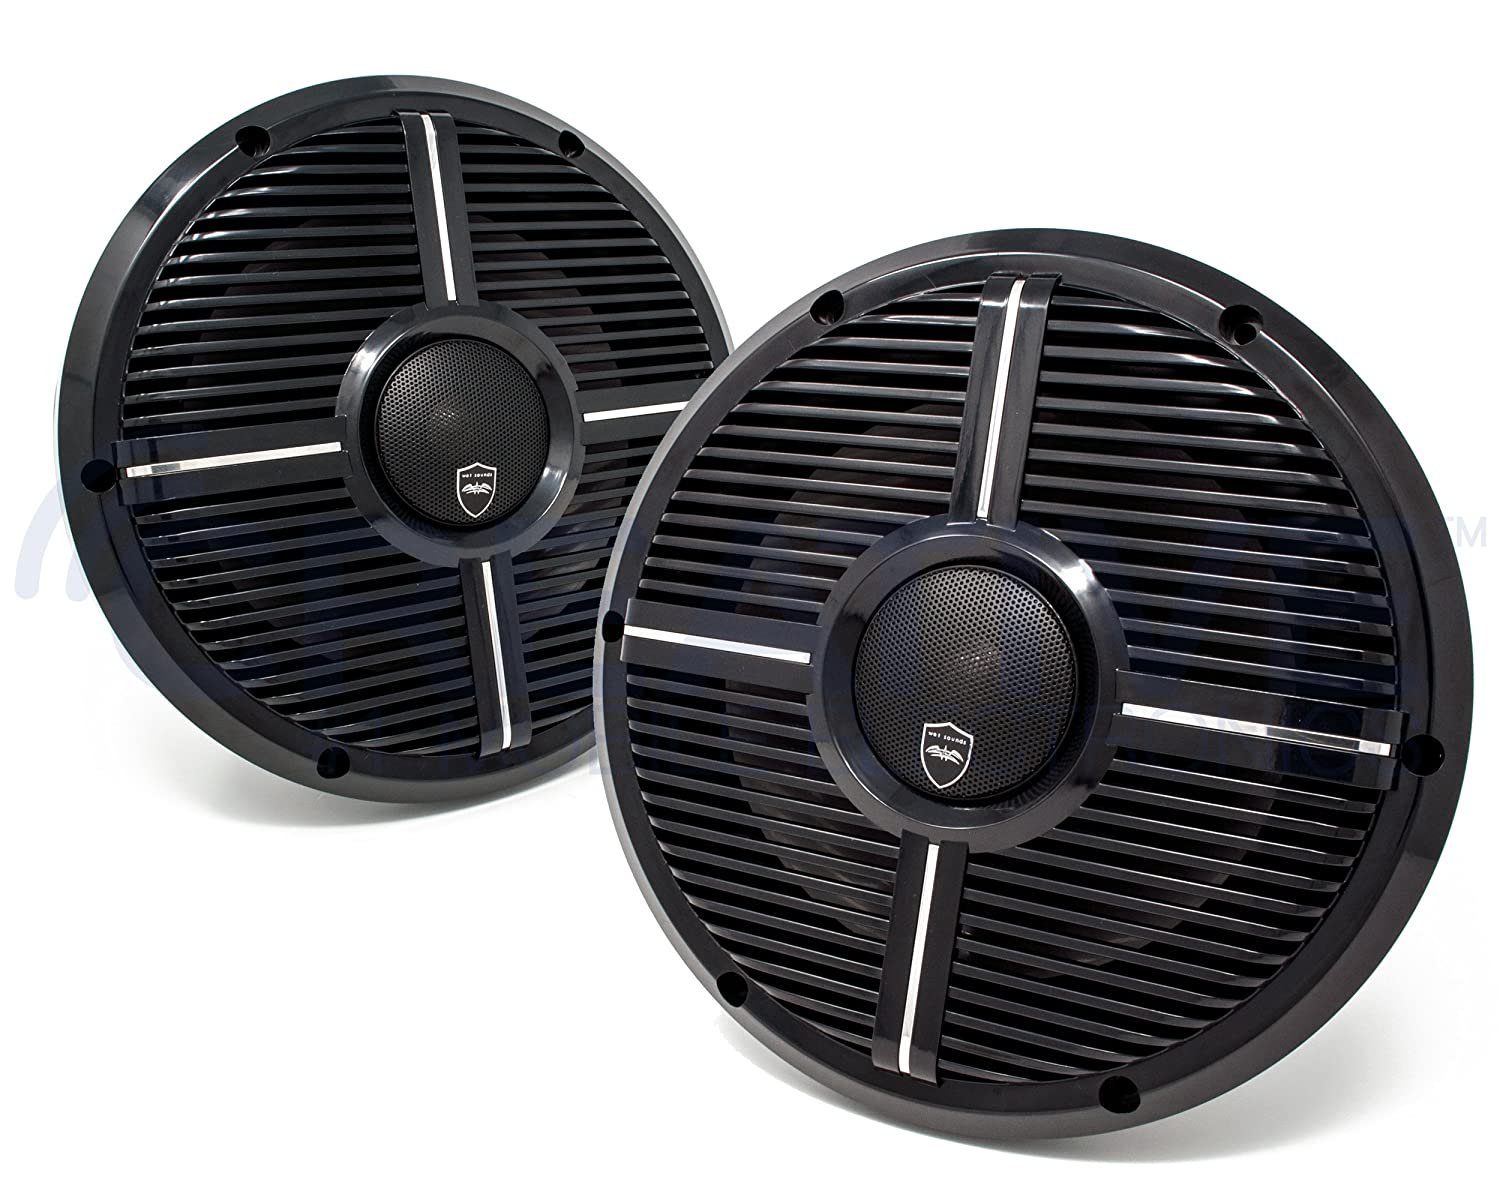 Amazon.com: Wet Sounds REVO CX-10 XW-B Black XW Grill 10 Inch Marine High Performance LED Coaxial Speakers (pair): Electronics